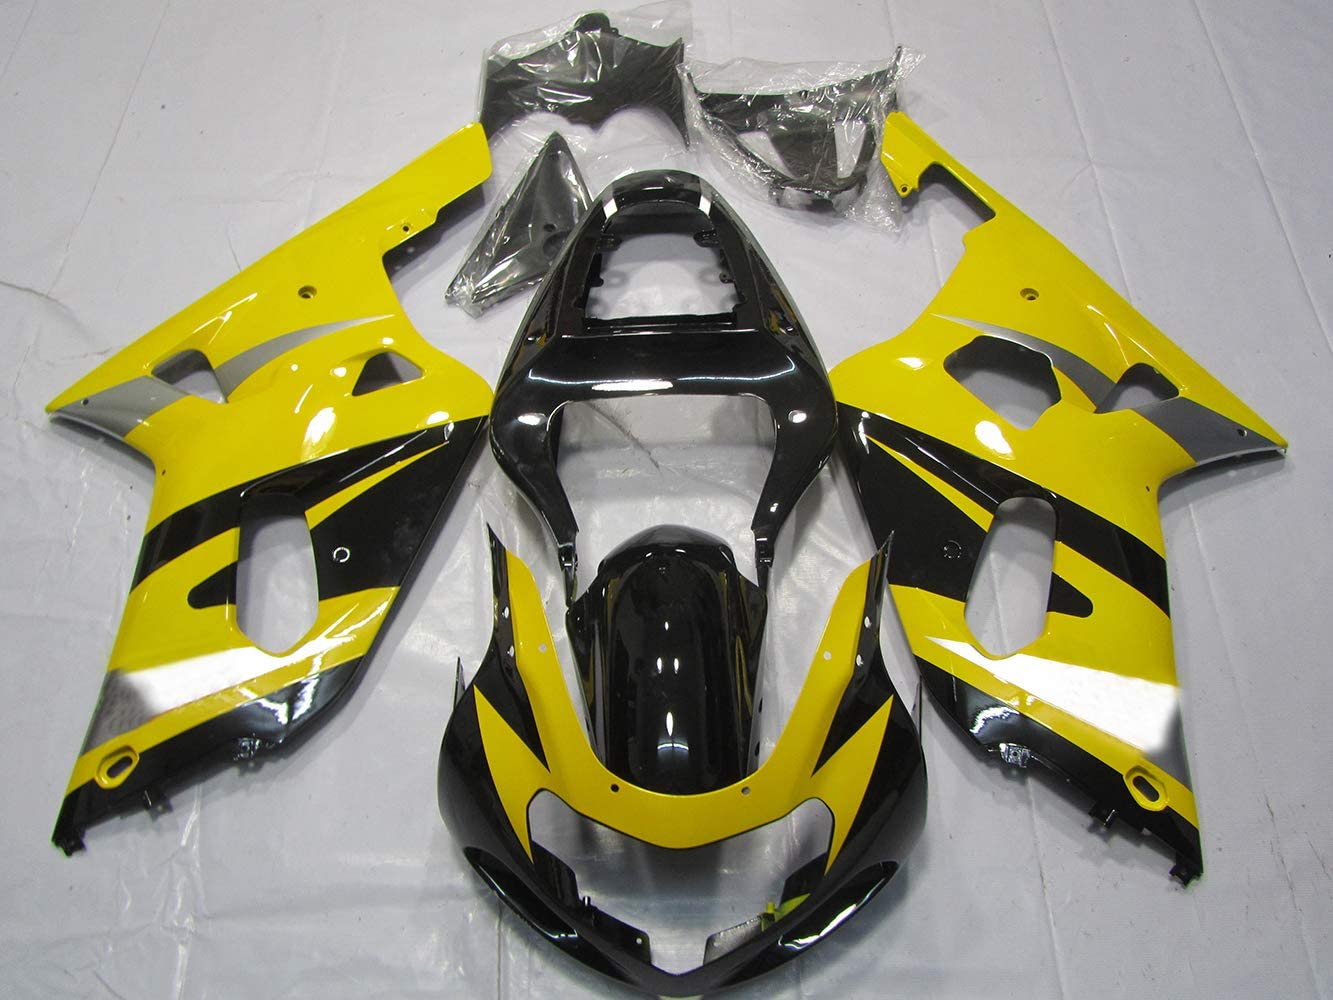 Yellow Silver Black Complete Painted injection ABS plastic body kit fairing suit for 2001-2003 Suzuki GSXR 600 750